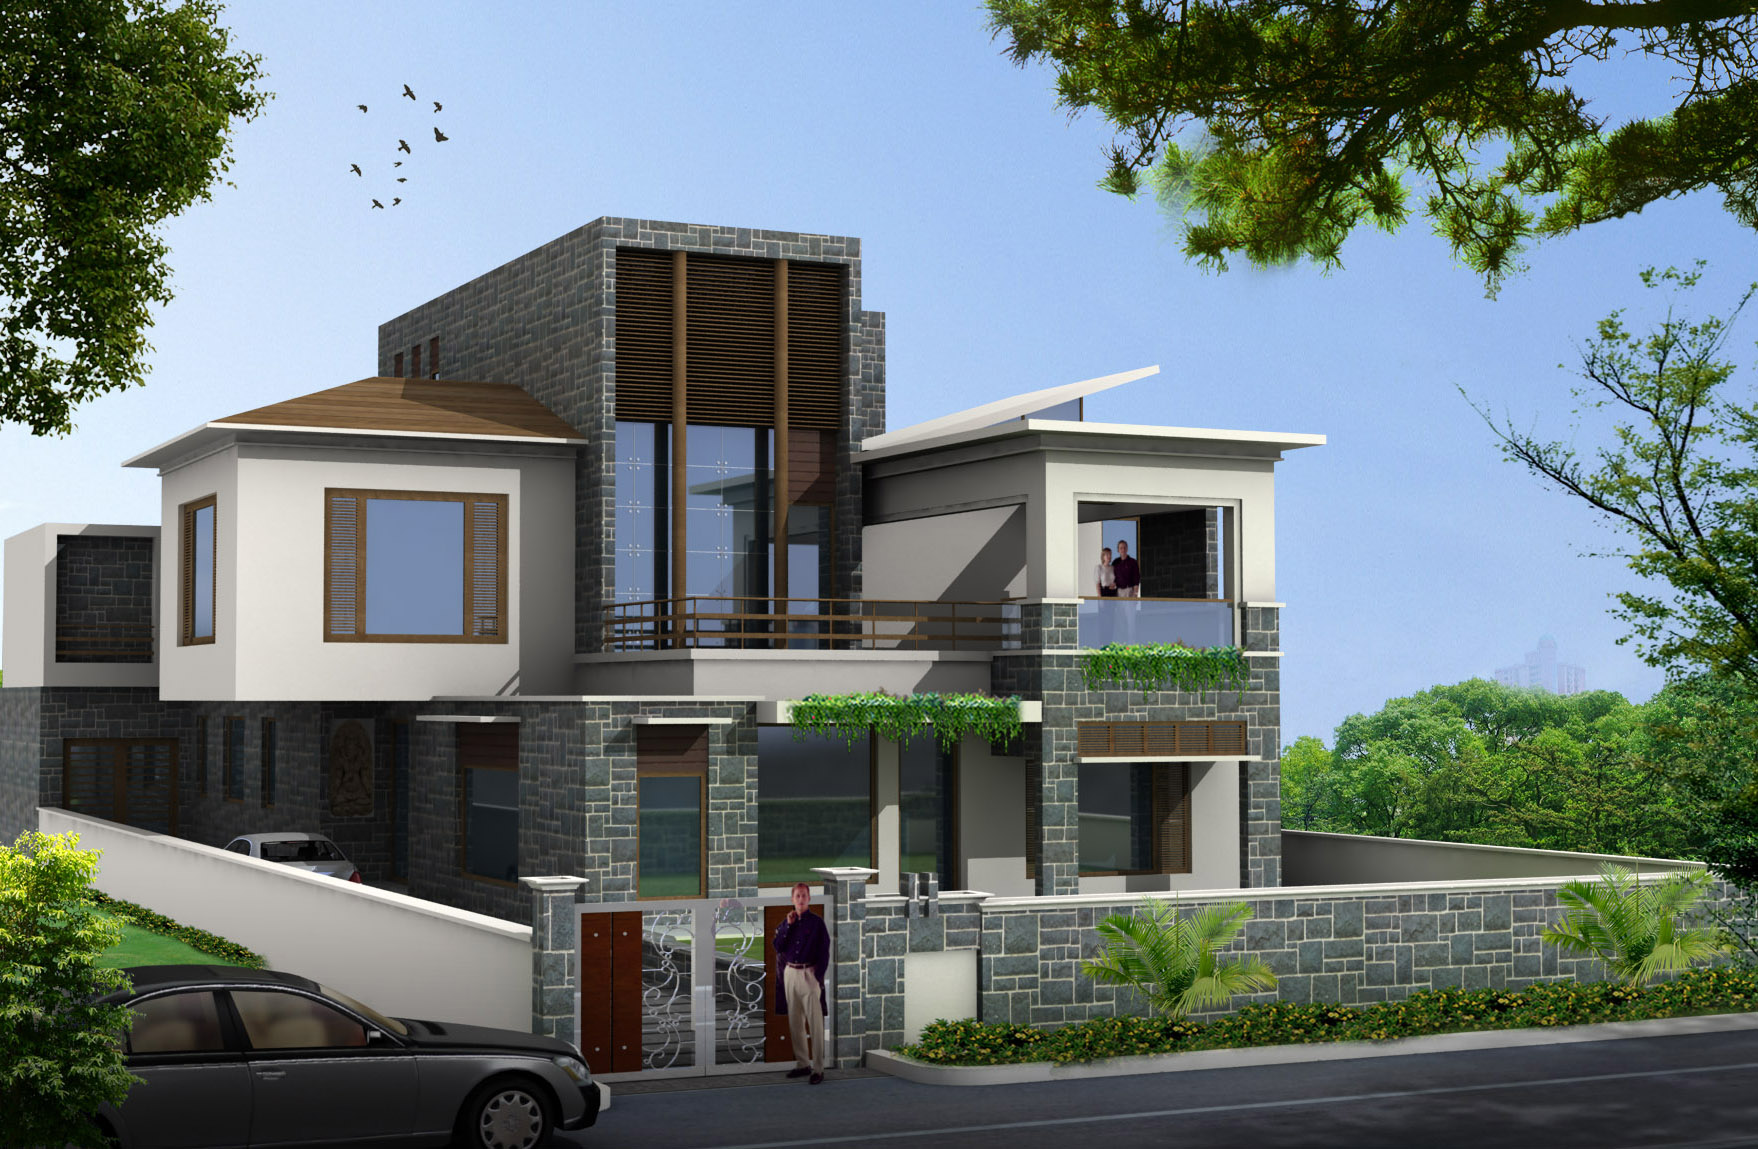 Best front elevation designs 2014 - House exterior design ...